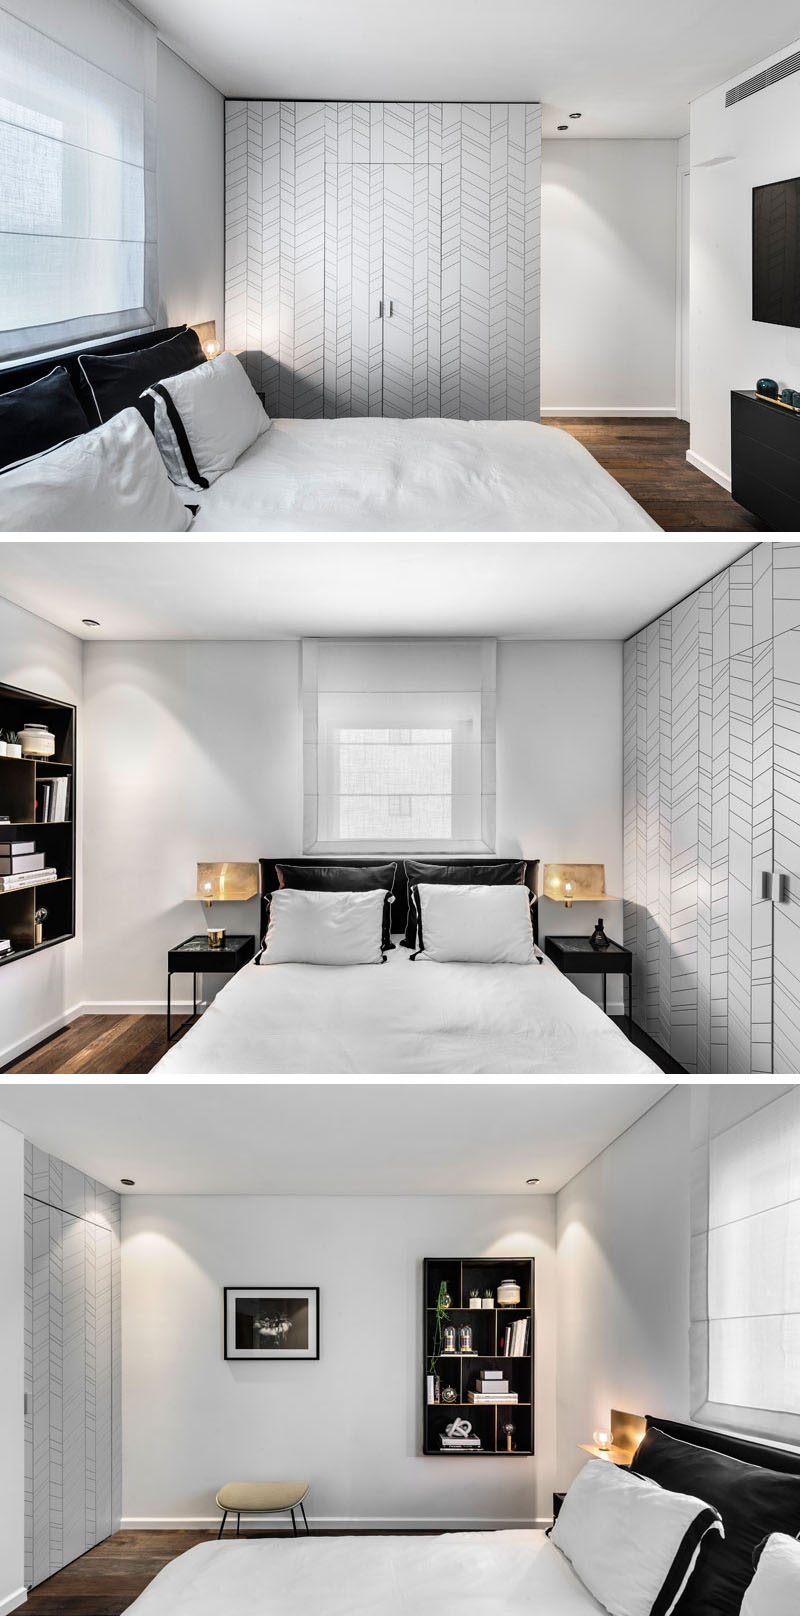 In this modern master bedroom, furnishings have been kept minimal. A walk-in closet is hidden within a decorative accent wall, while on the opposite wall, a bookshelf becomes a place to display personal items. A door off to the side of the bookshelf leads to the ensuite bathroom. #MasterBedroom #BedroomDesign